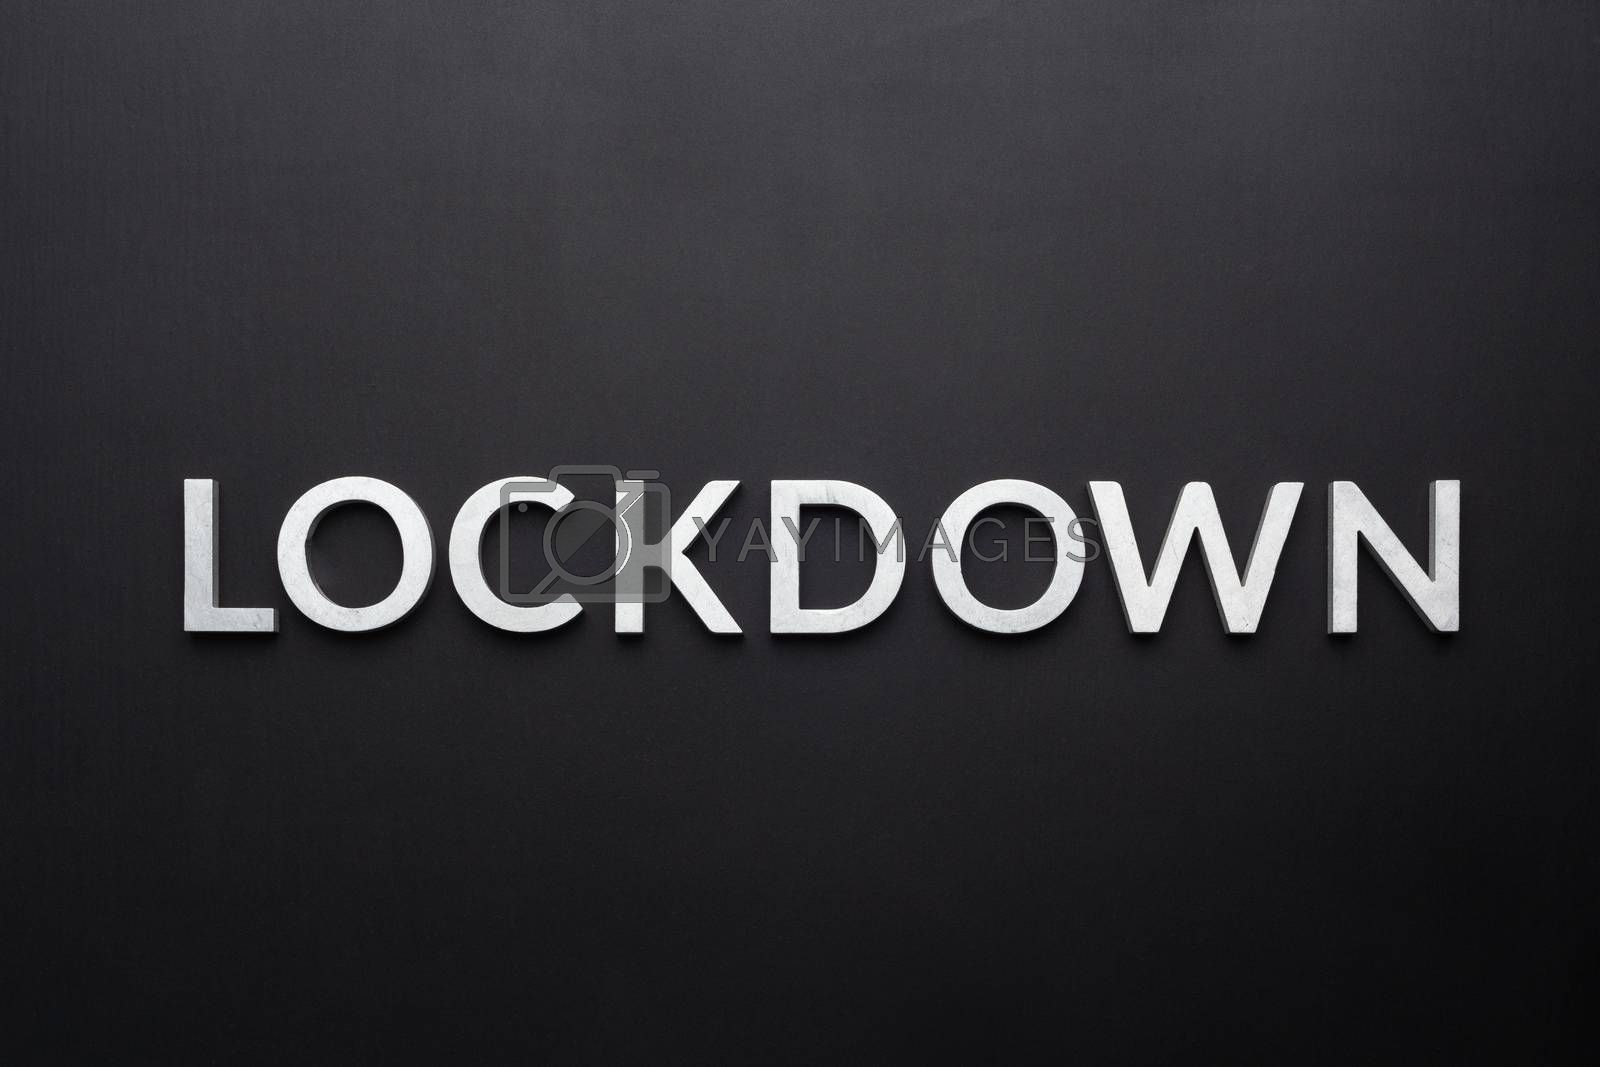 the word lockdown laid with silver metal letters on flat black background in directly above perspective.